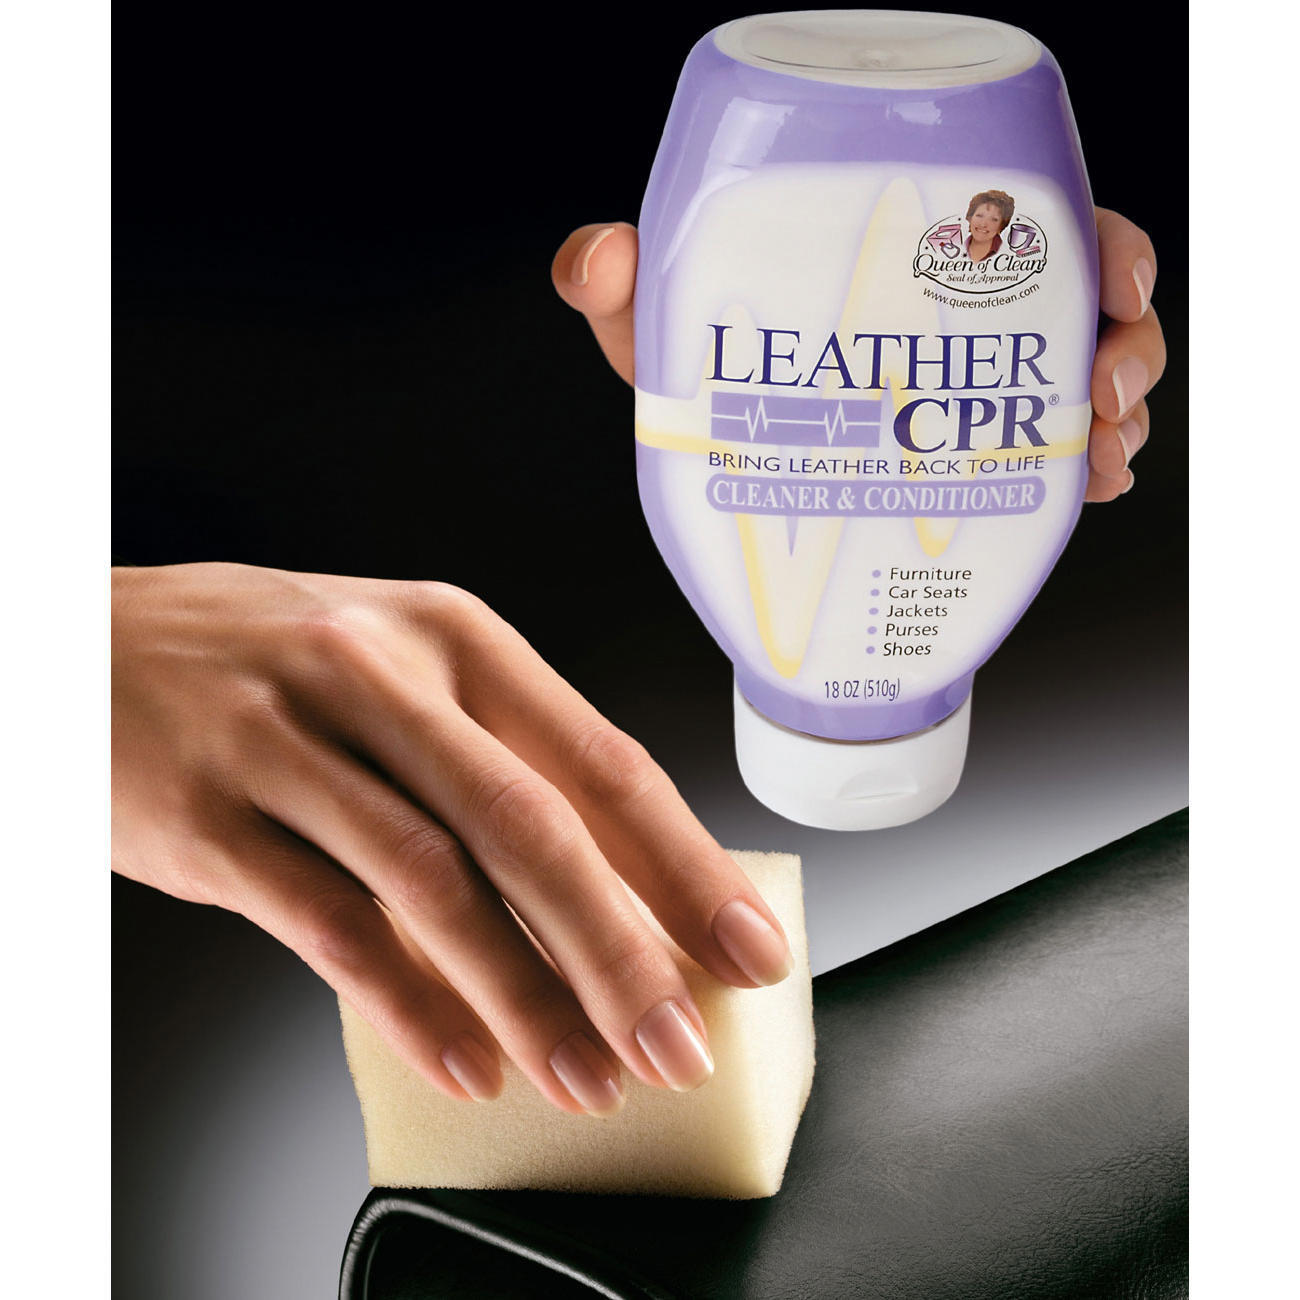 Buy Leather Cpr 3 Year Product Guarantee